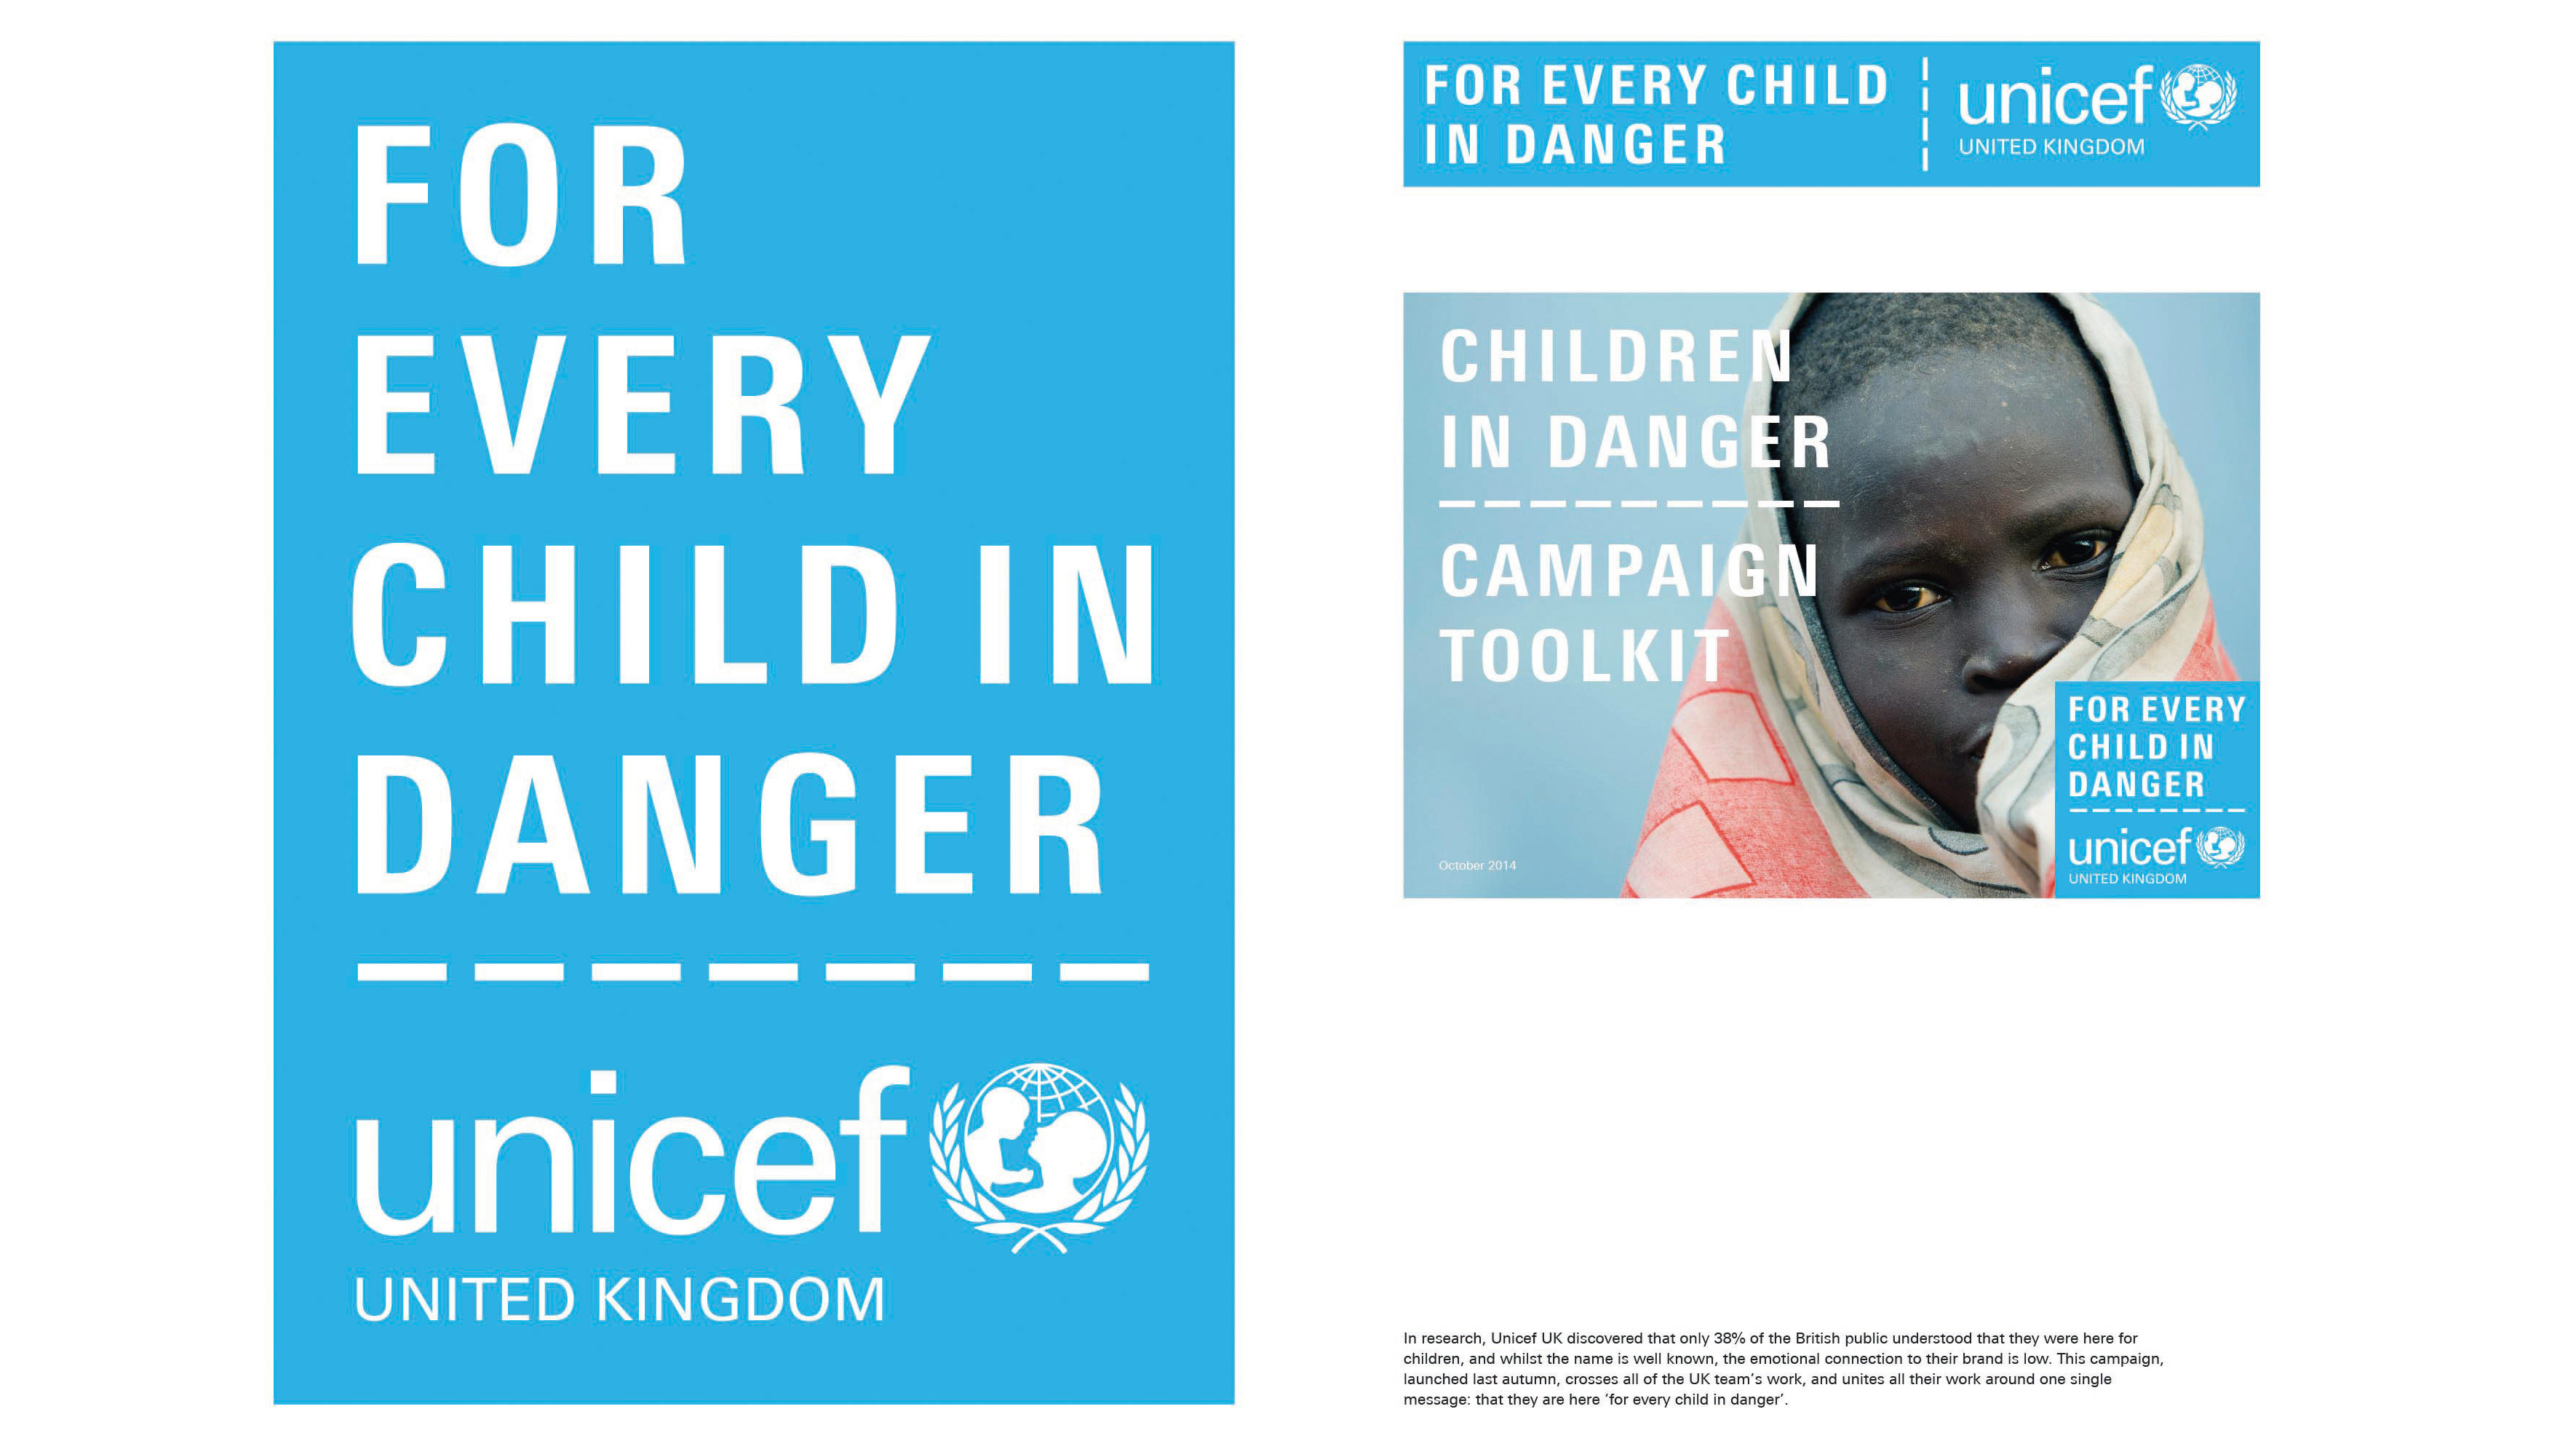 johnson banks: Unicef UK campaign